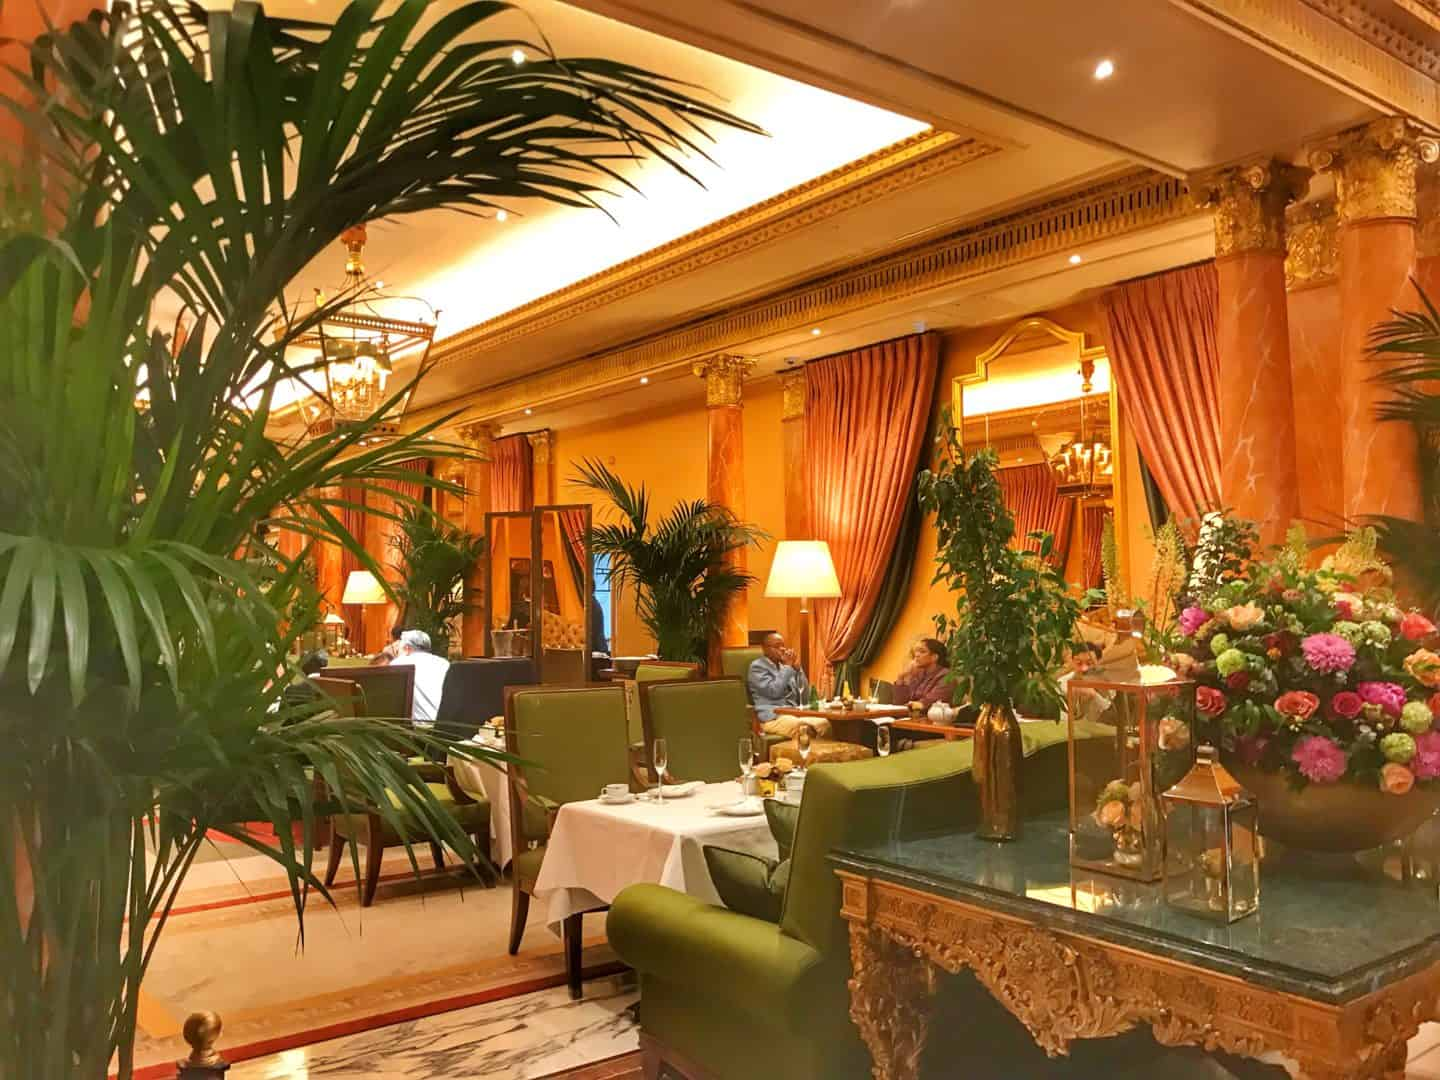 Art Deco afternoon tea at The Dorchester London and Mayfair walking ...